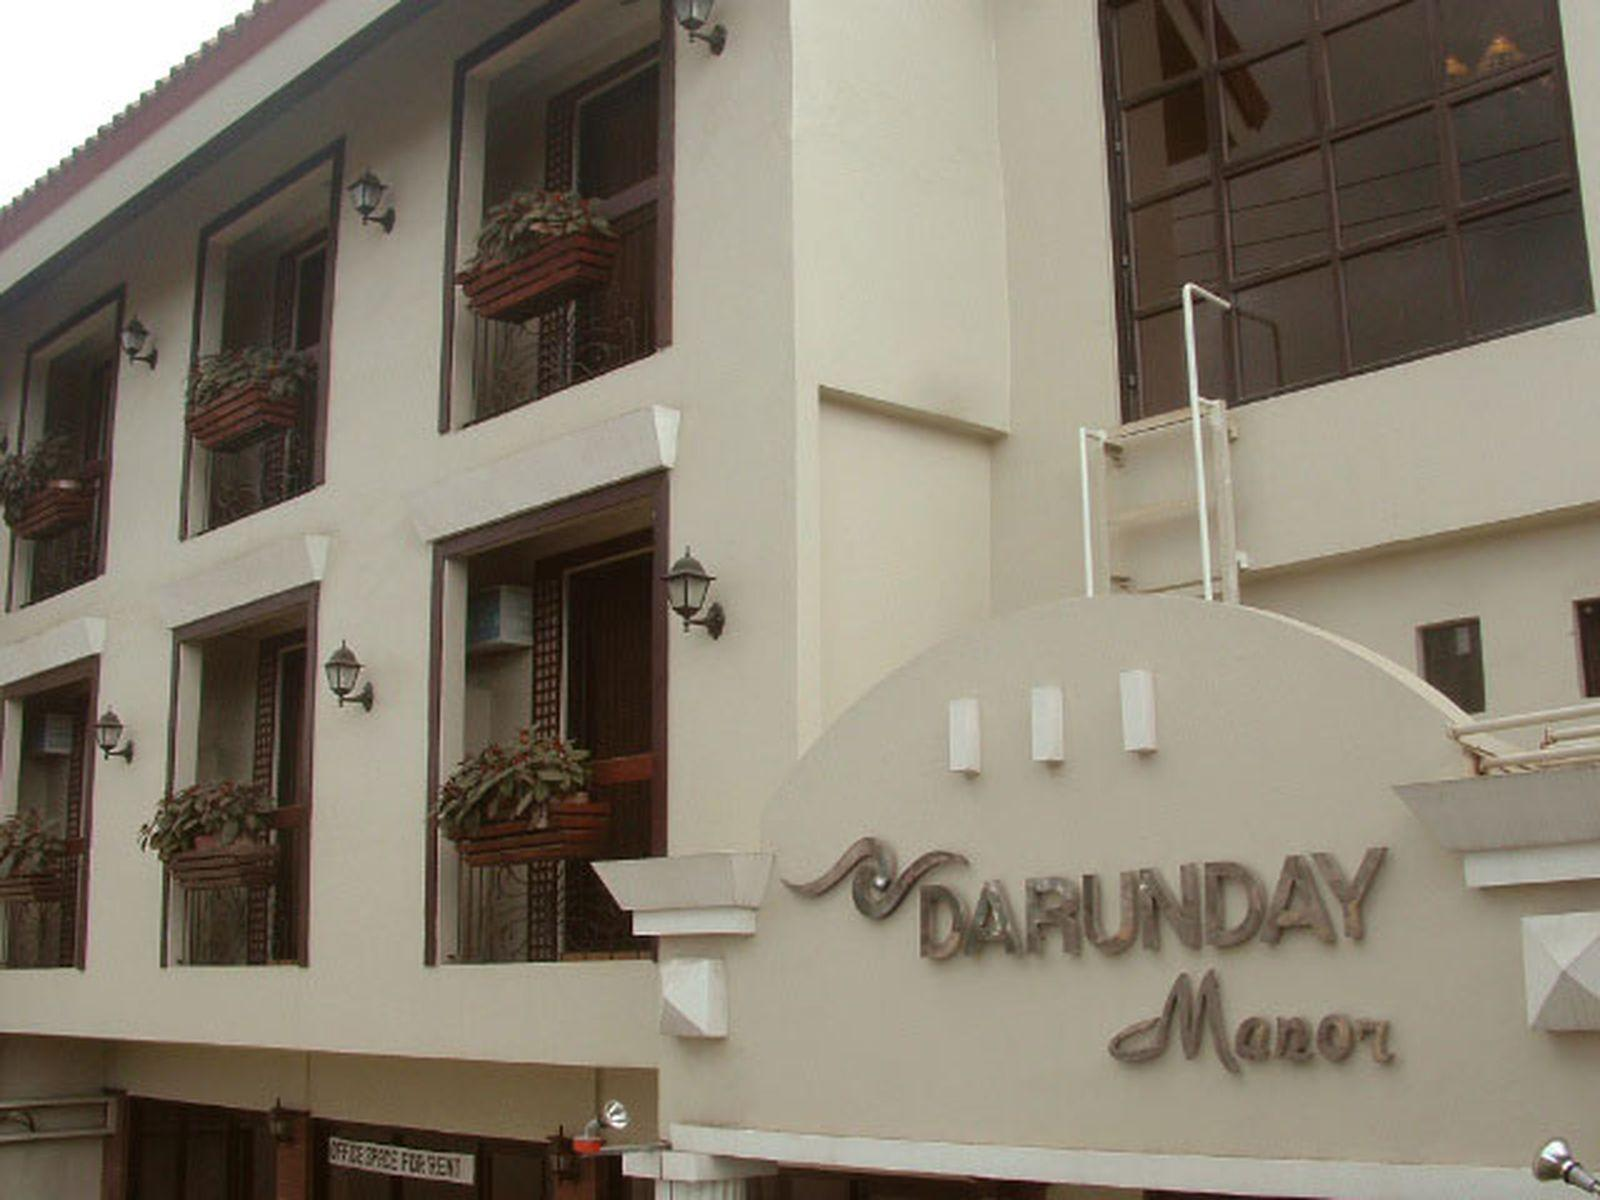 Darunday Manor